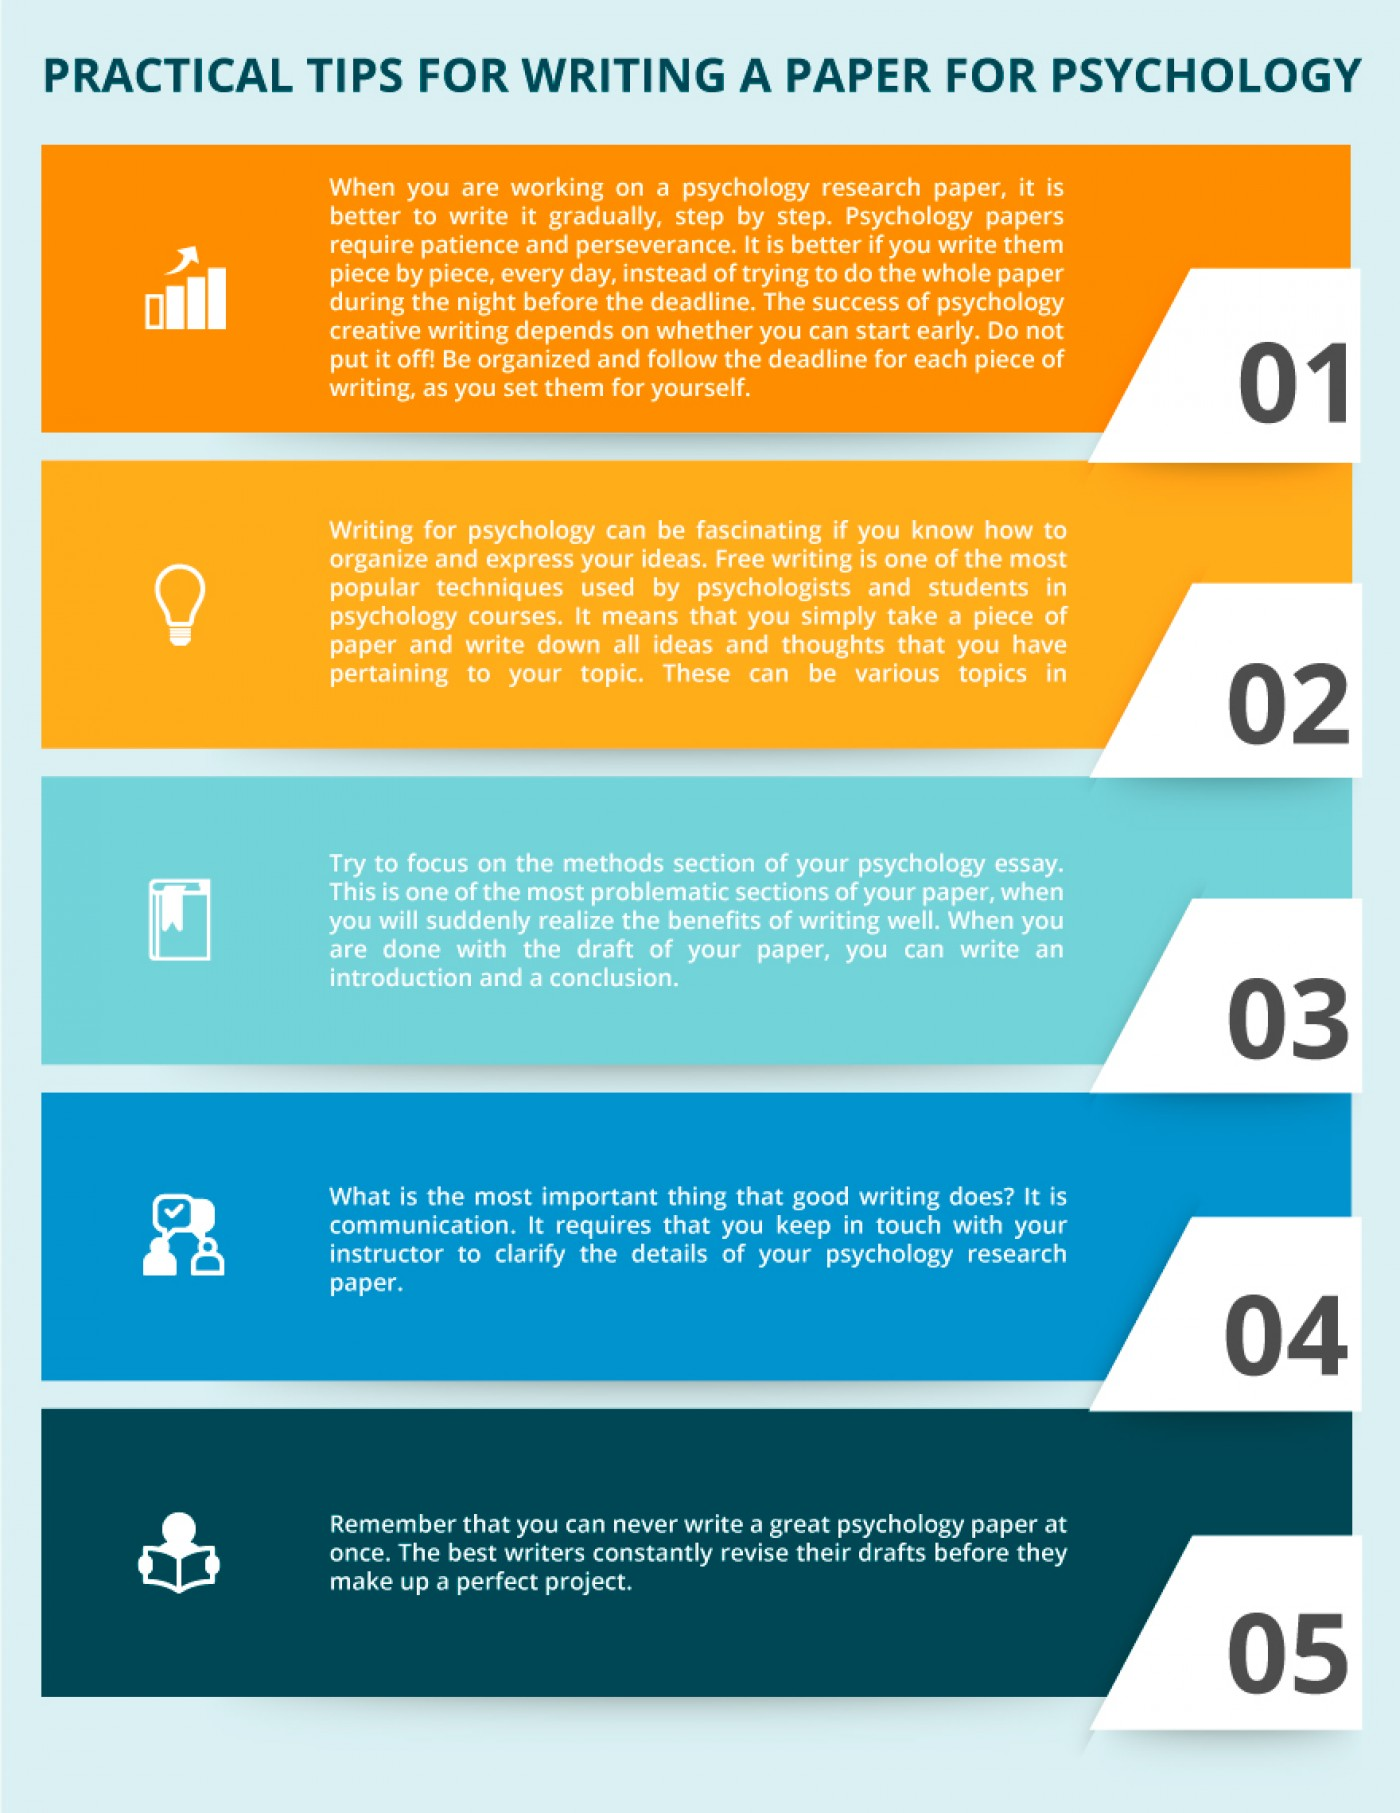 012 Research Paper Infographic Practical Tips For Writing Psychology How To Write Good Unusual A Fast Youtube Reddit 1400